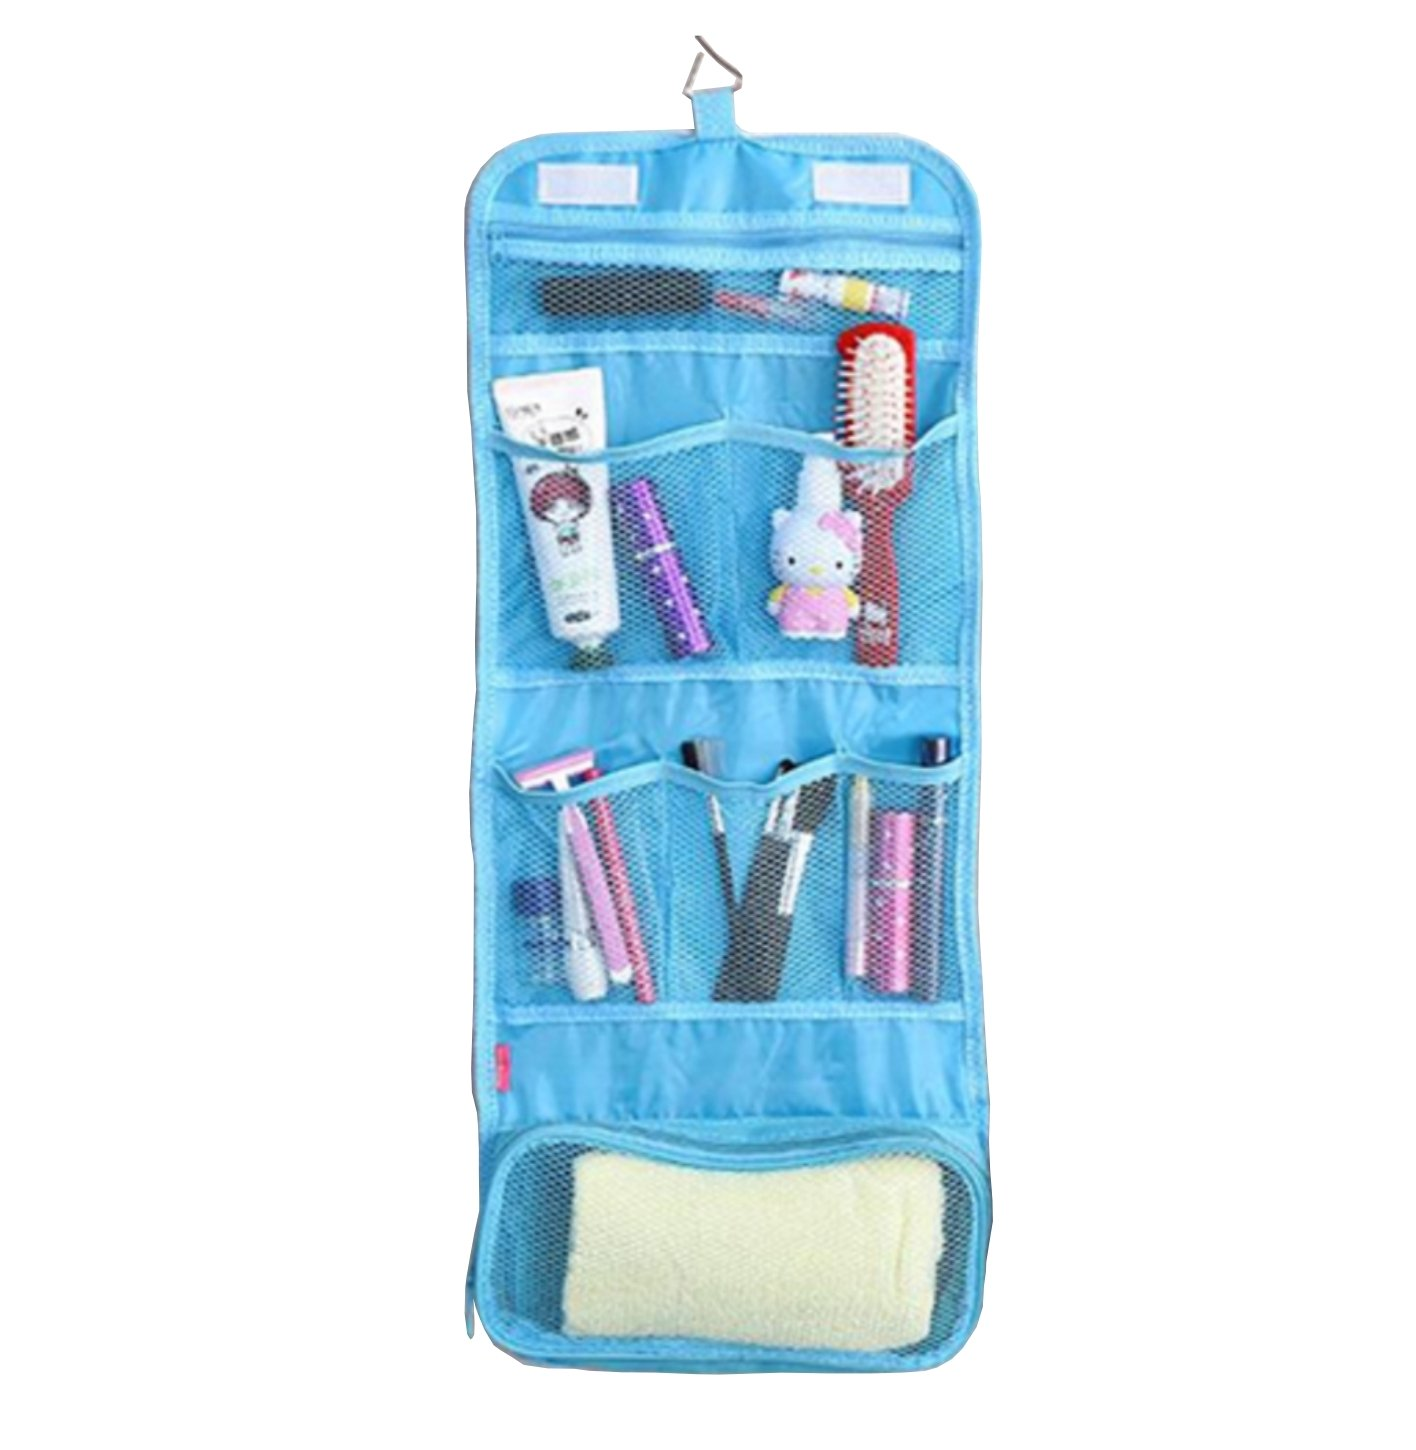 Amazon.com: WOMUL Travel Caddy Hang On Bathroom Shower Organizer ...